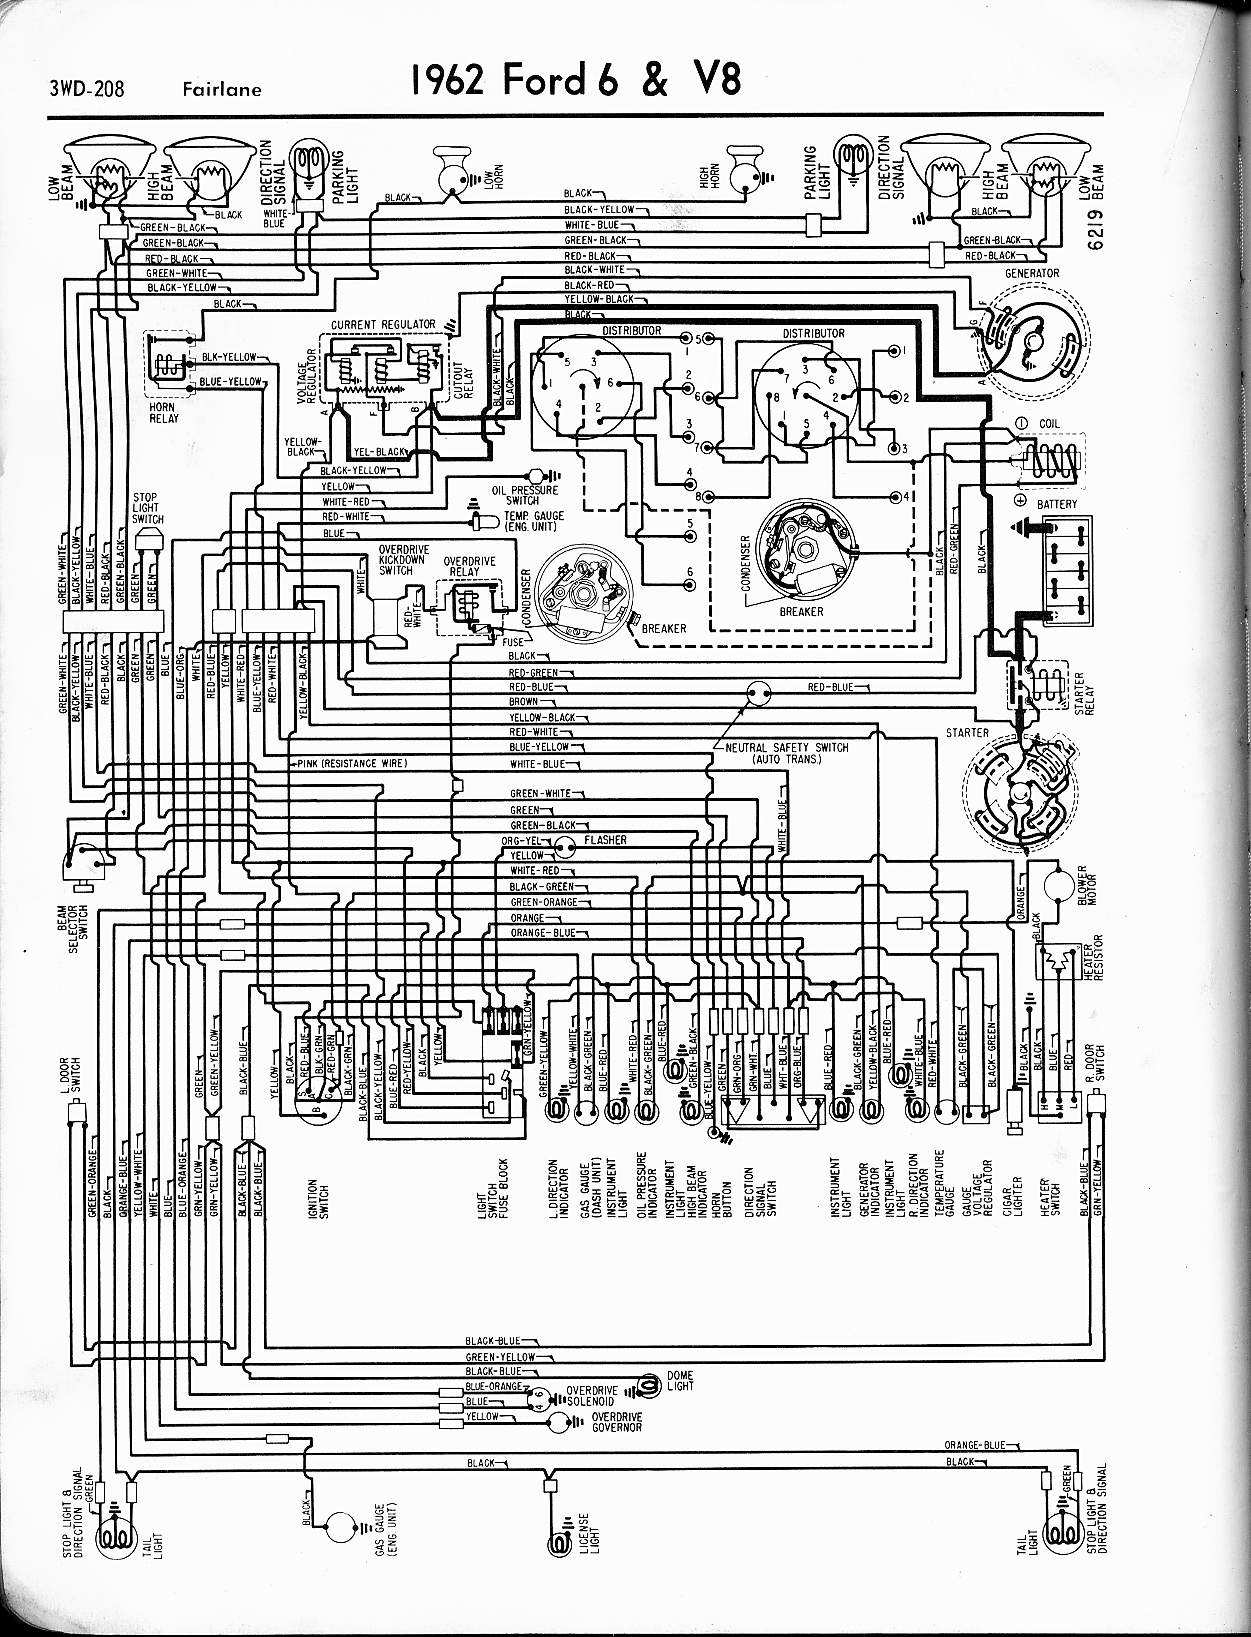 MWire5765 208 57 65 ford wiring diagrams  at mifinder.co